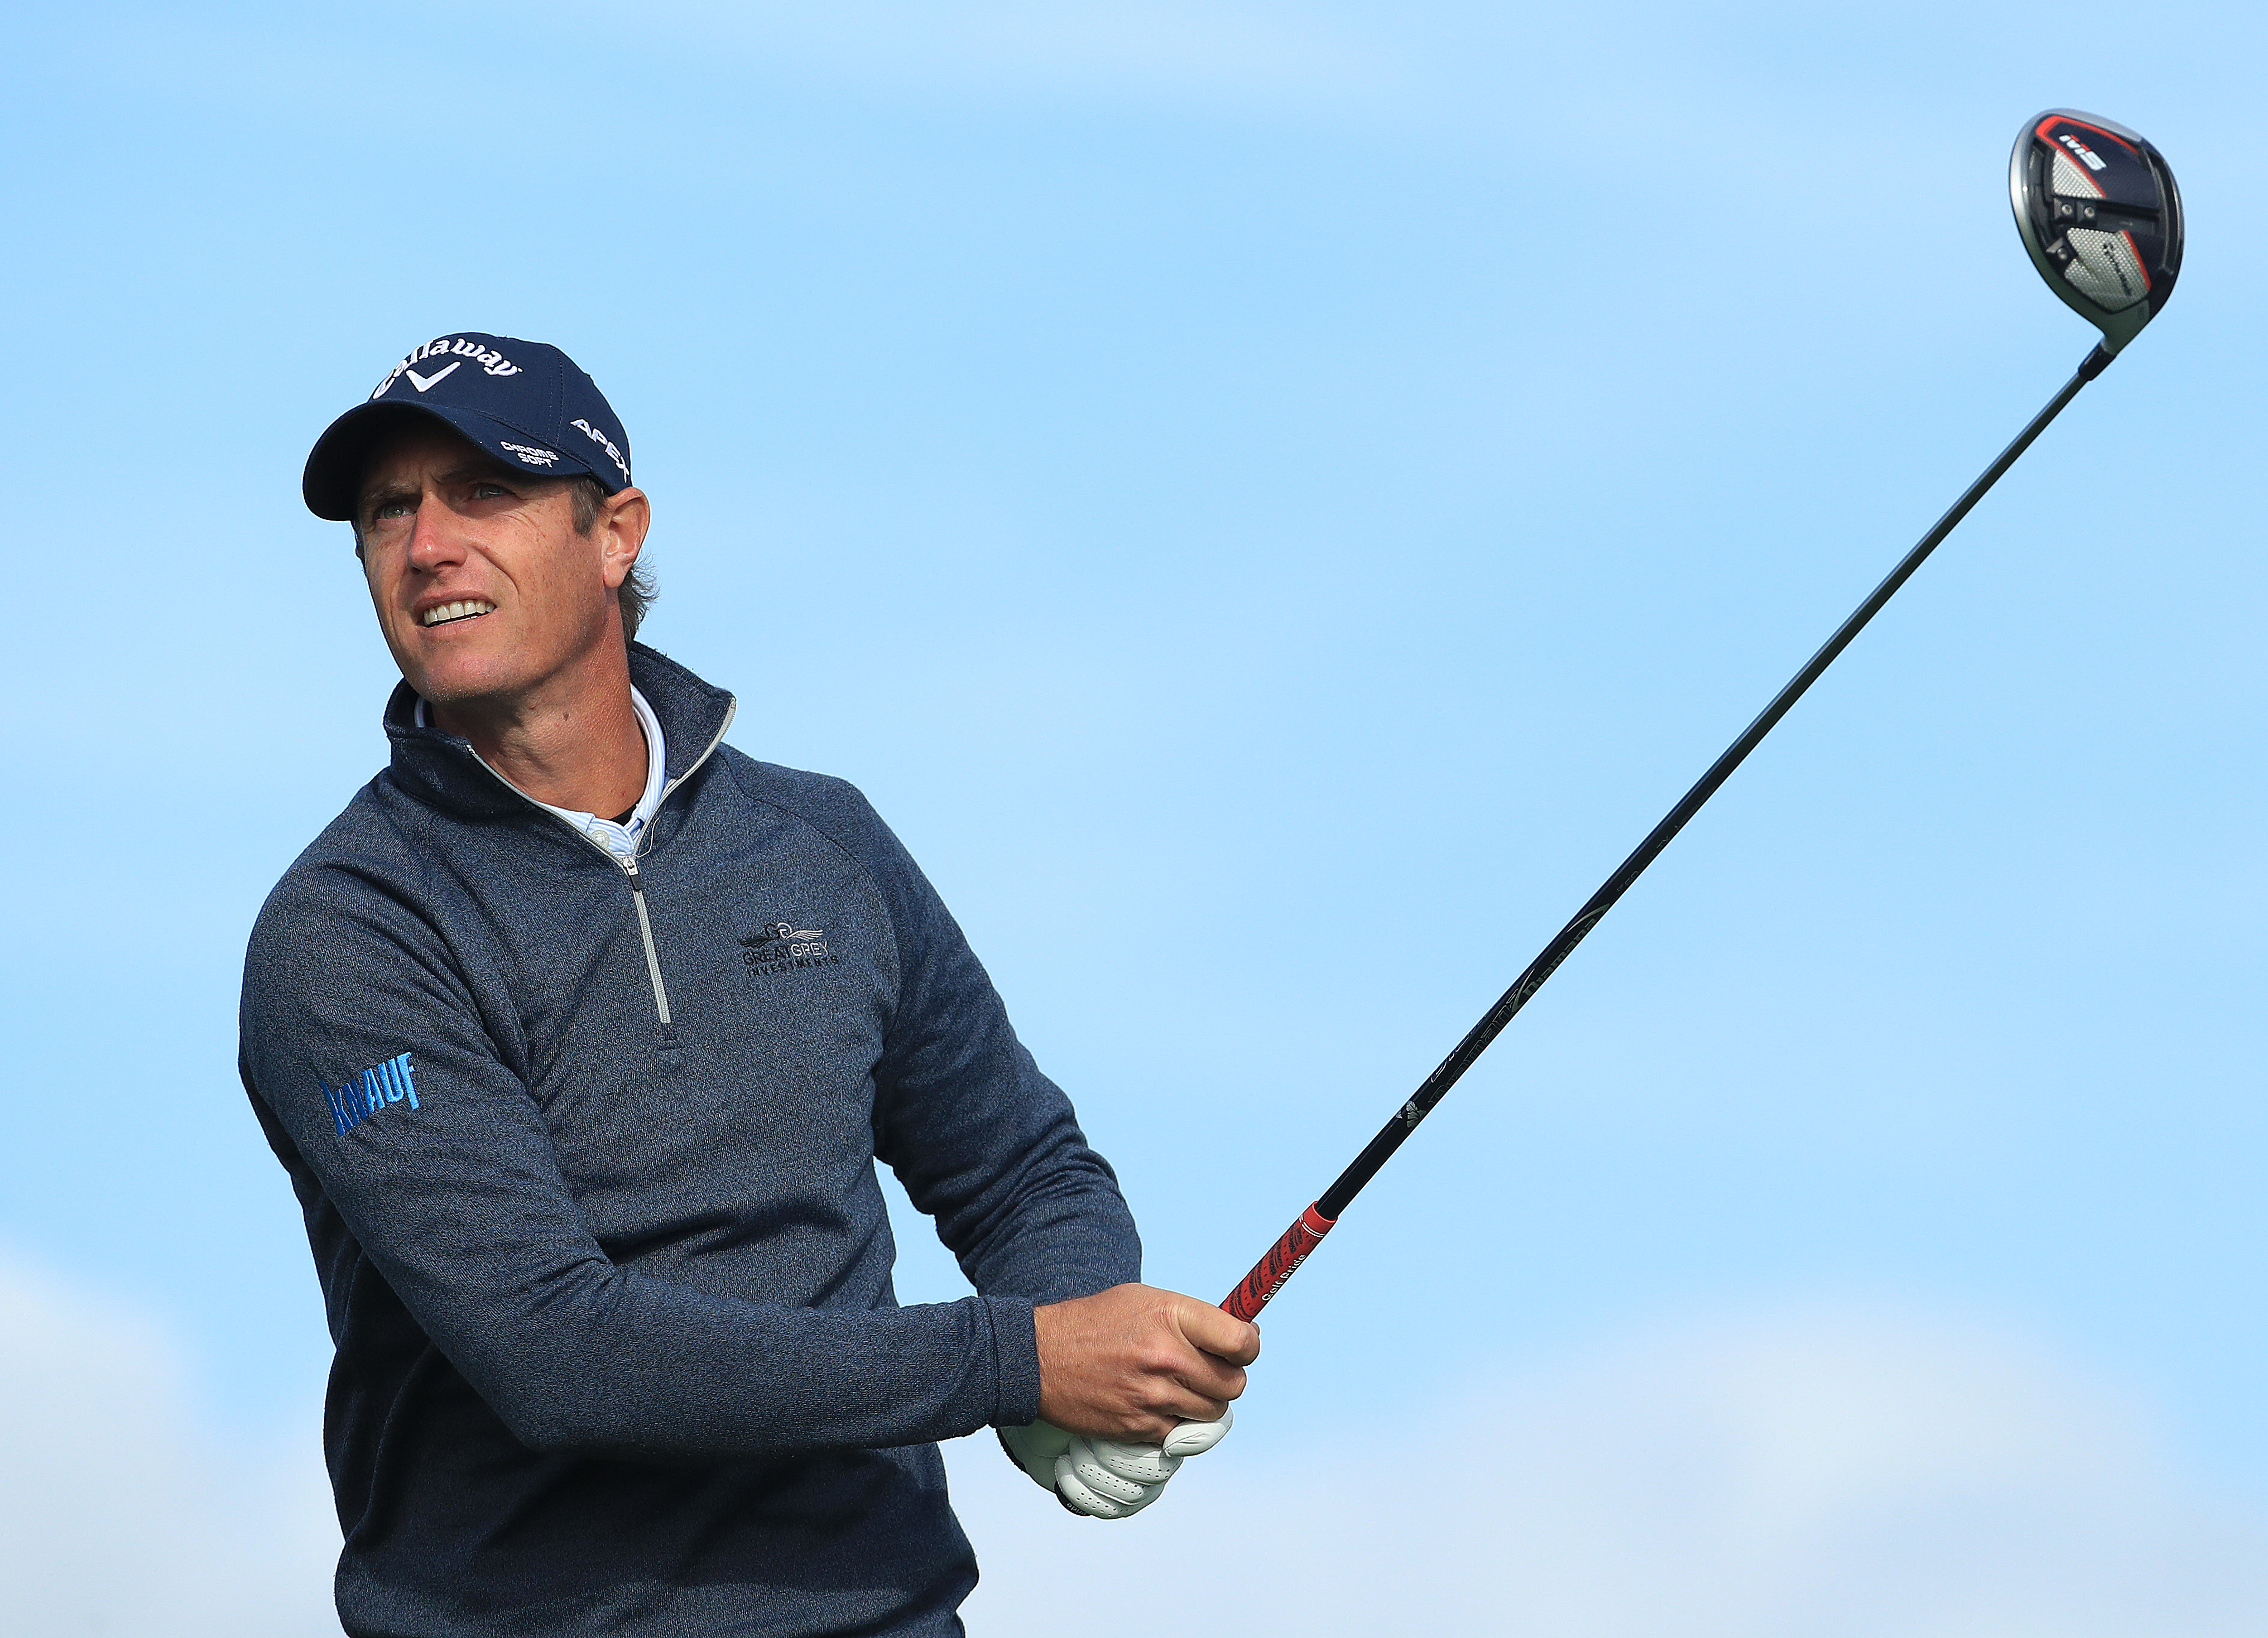 Amundi Open de France : Coetzee conserve le leadership